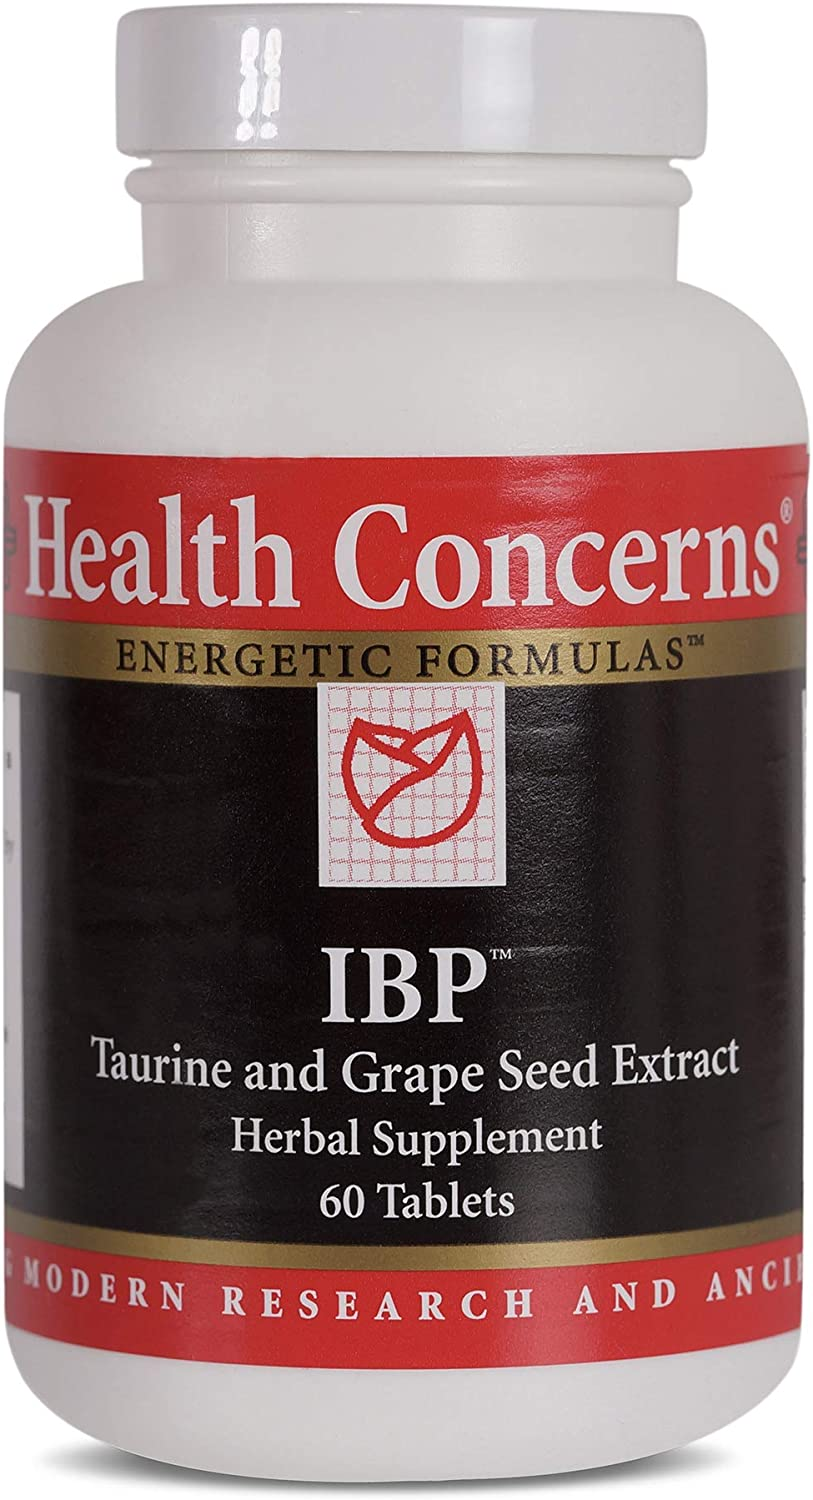 Health Concerns – IBP – Taurine and Grape Seed Extract Formula – Chinese Herbal Supplement – Blood Pressure Support – with Taurine – 60 Tablets per Bottle